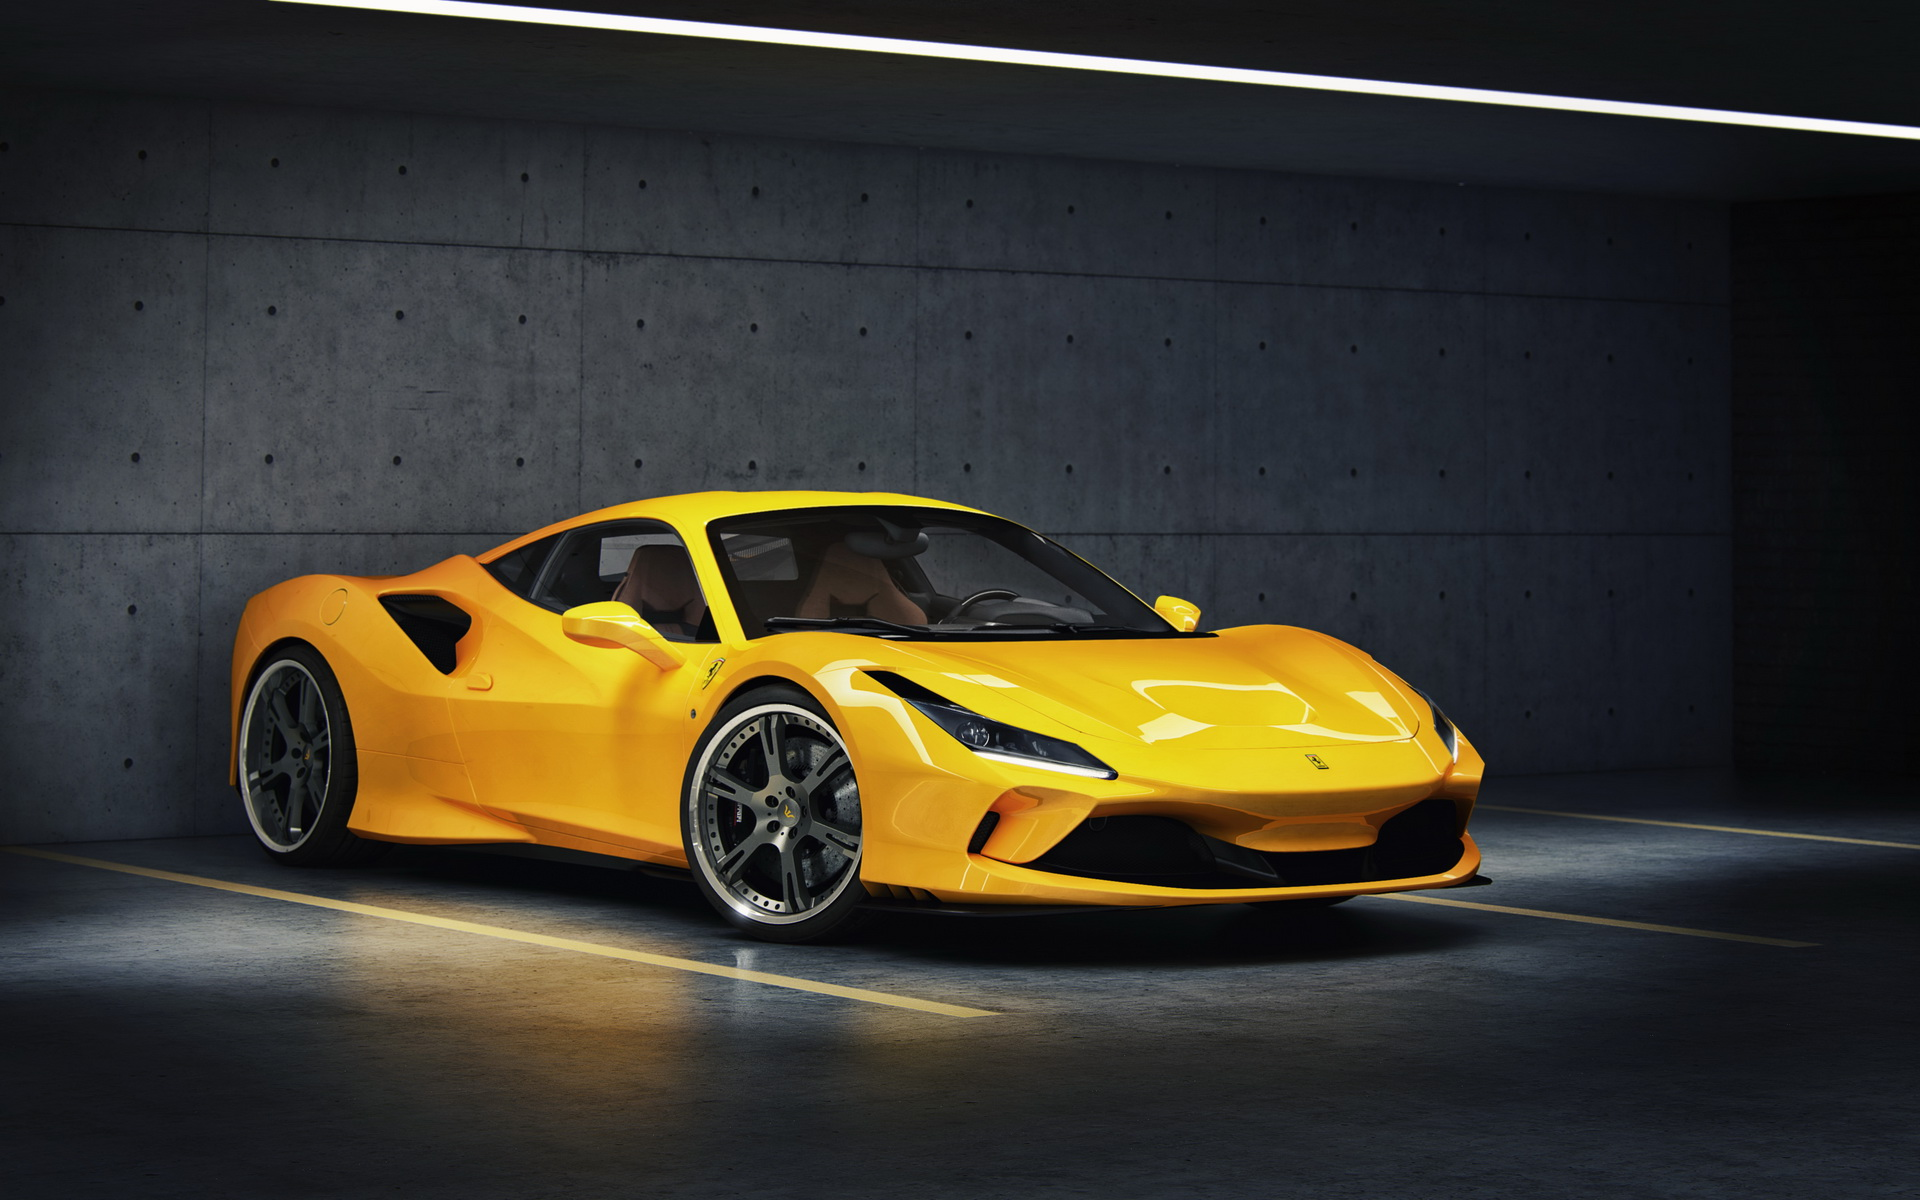 Wheelsandmore has added a whole range of new tuning options for the Ferrari F8 Tributo, making meaningful changes to its suspension, exhaust system and powertrain.